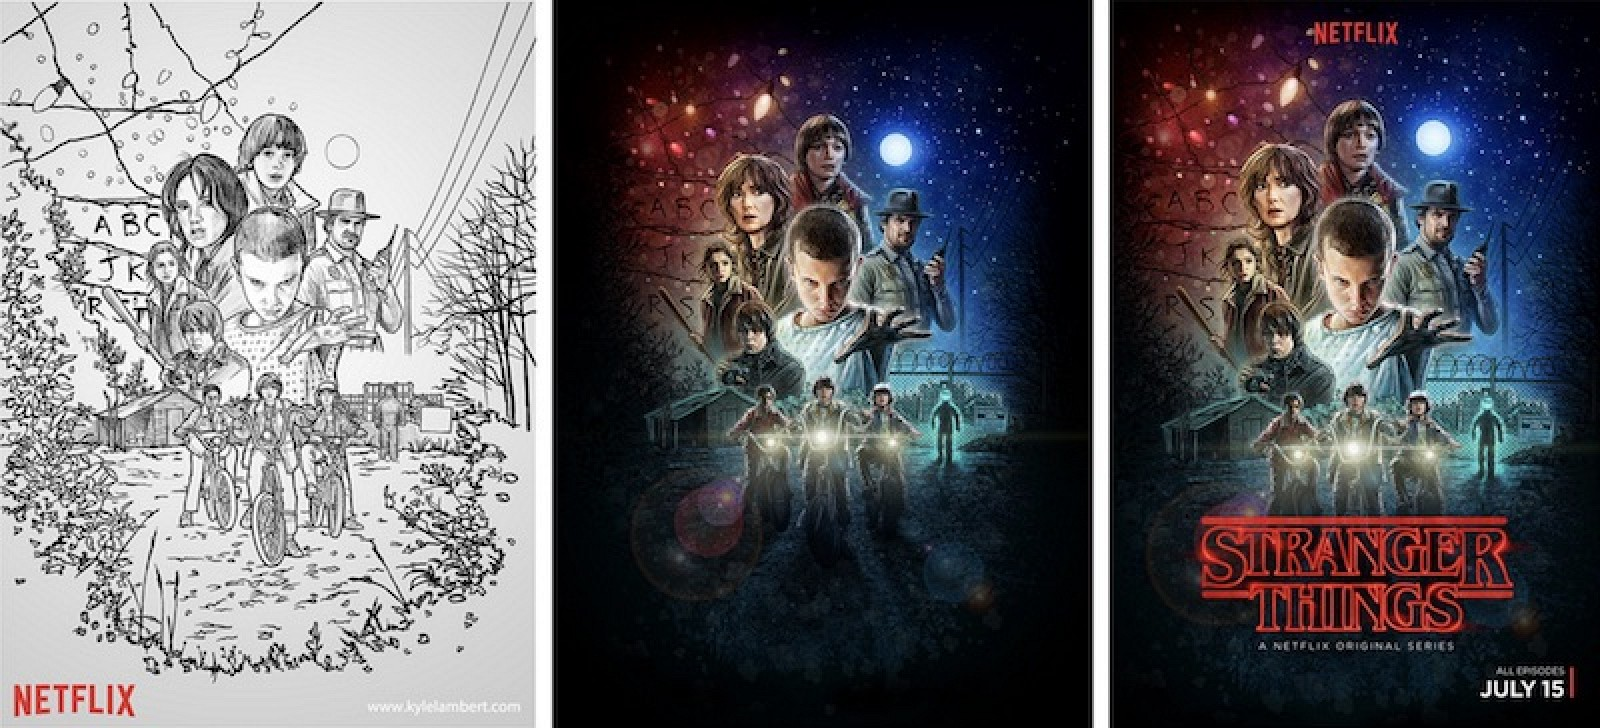 Best Way To Design Poster On Mac: Stranger Things7 Poster Began as Sketch Created With iPad Pro and rh:macrumors.com,Design